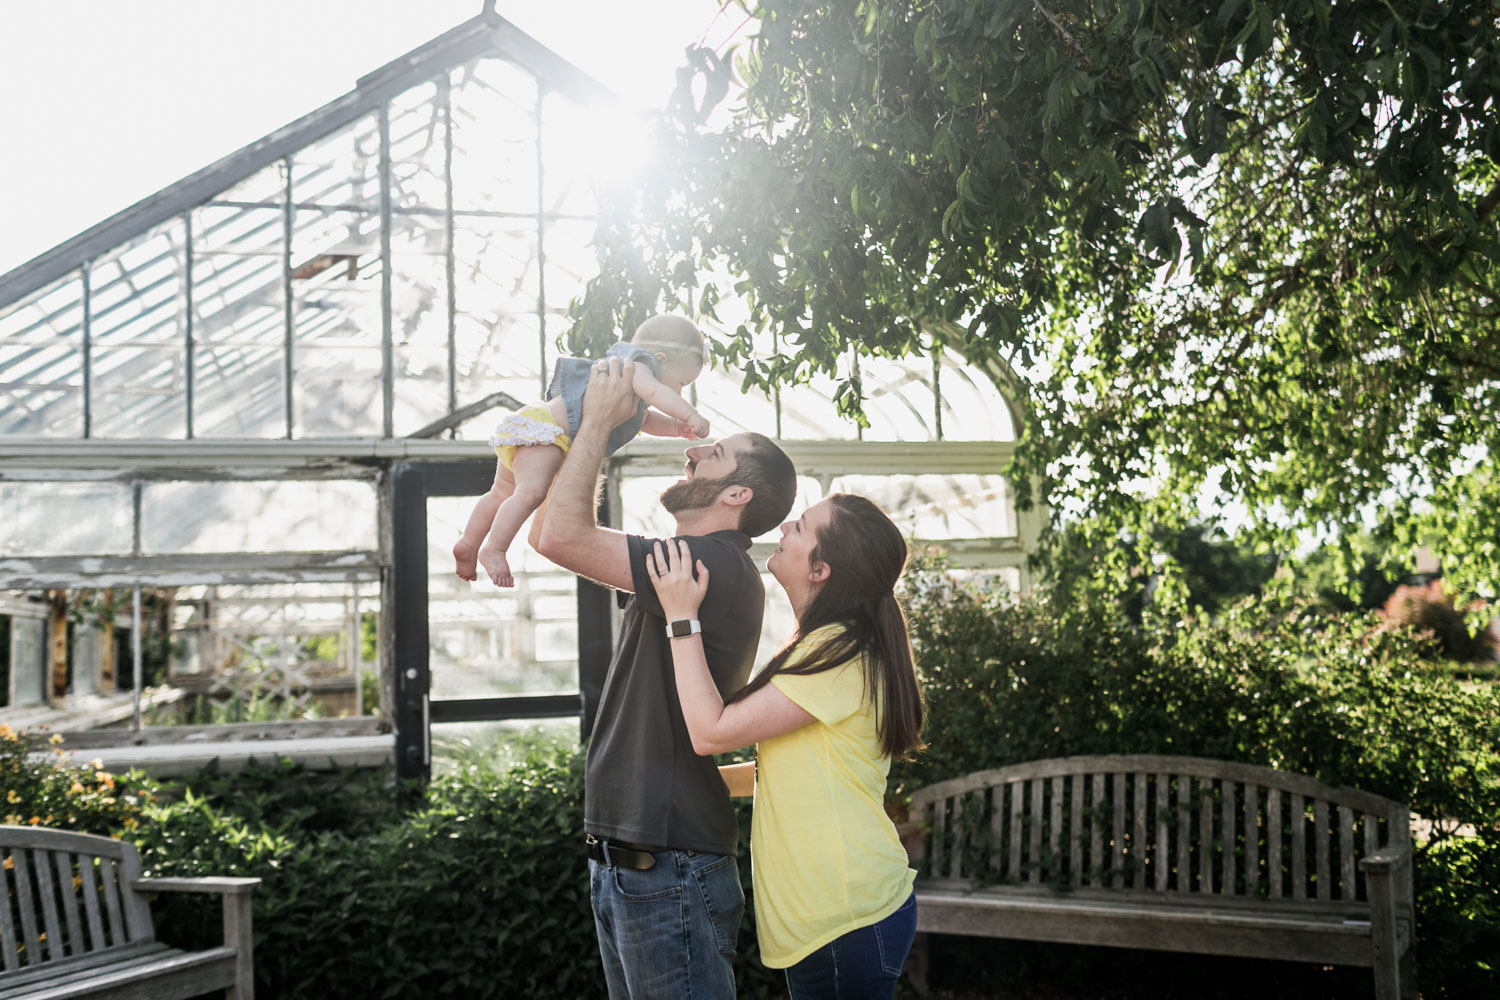 Family laughing and spending time together during a Lifestyle Photography Session at Kansas State University Gardens in Manhattan, Kansas.